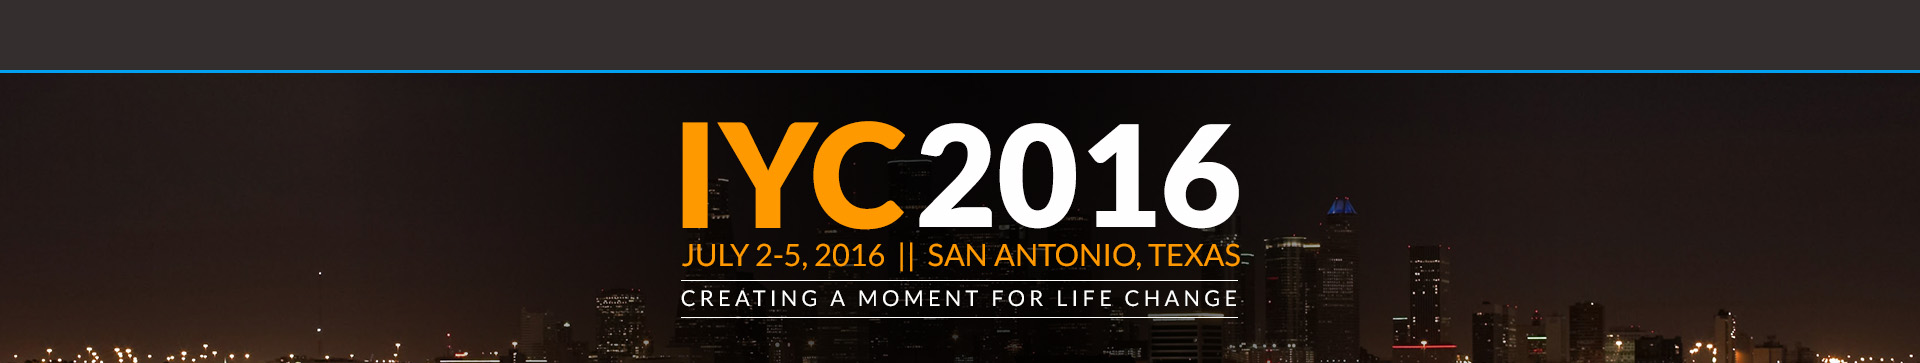 IYC2016